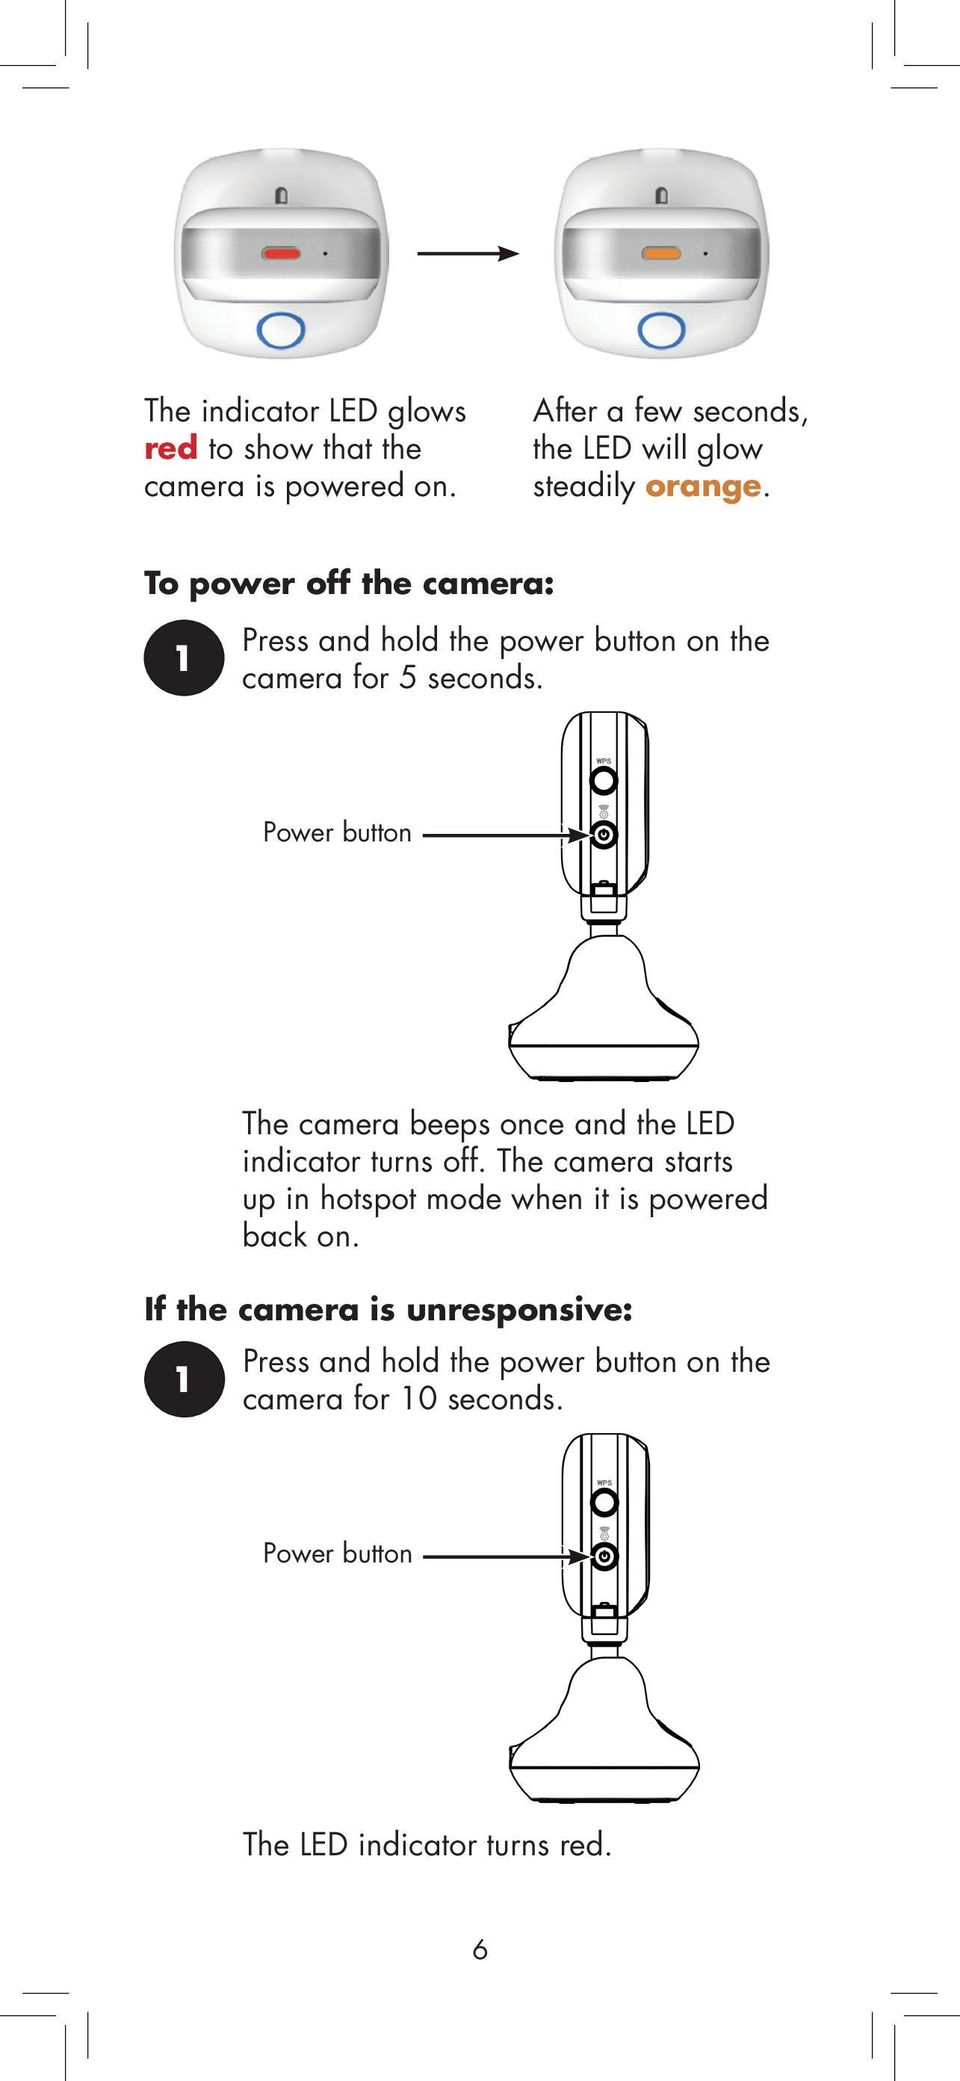 To power off the camera: Press and hold the power button on the camera for 5 seconds.